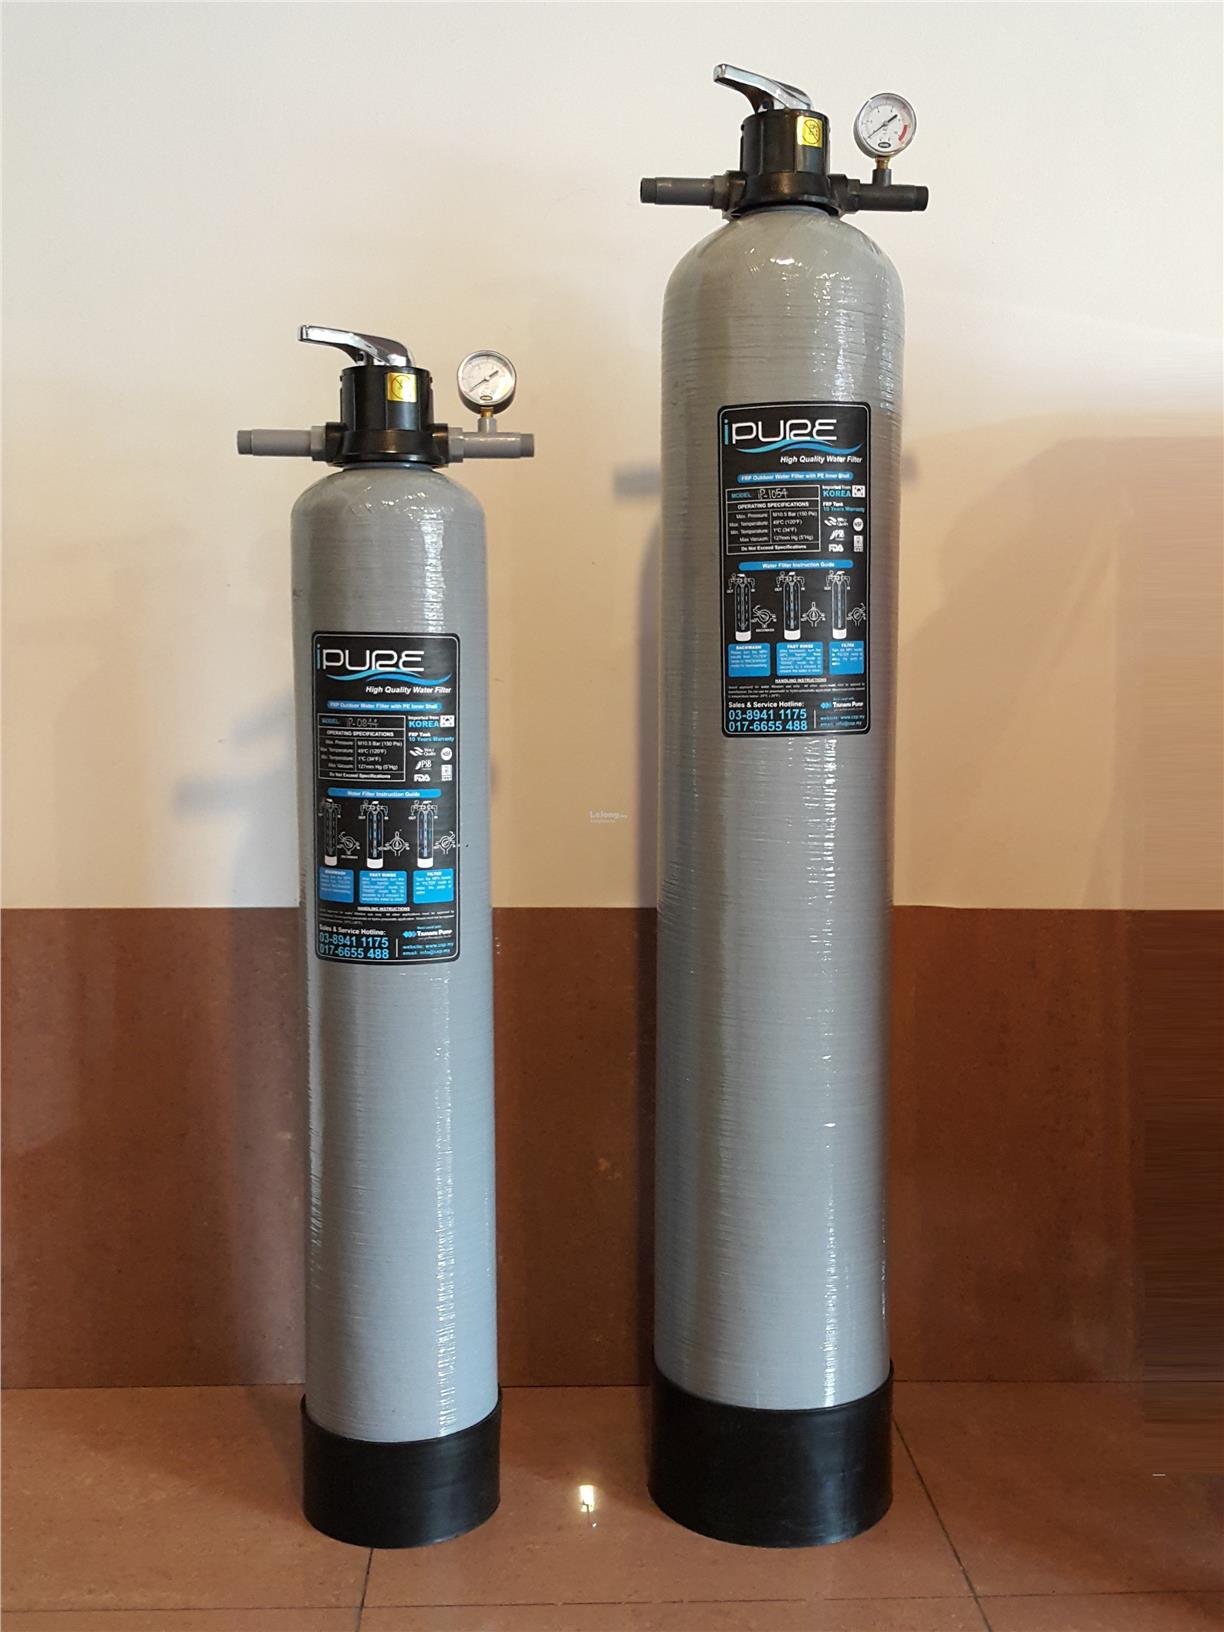 Tsunami iPure 10' x 1.45m FRP Outdoor Water Filter iP-1054 ID339463